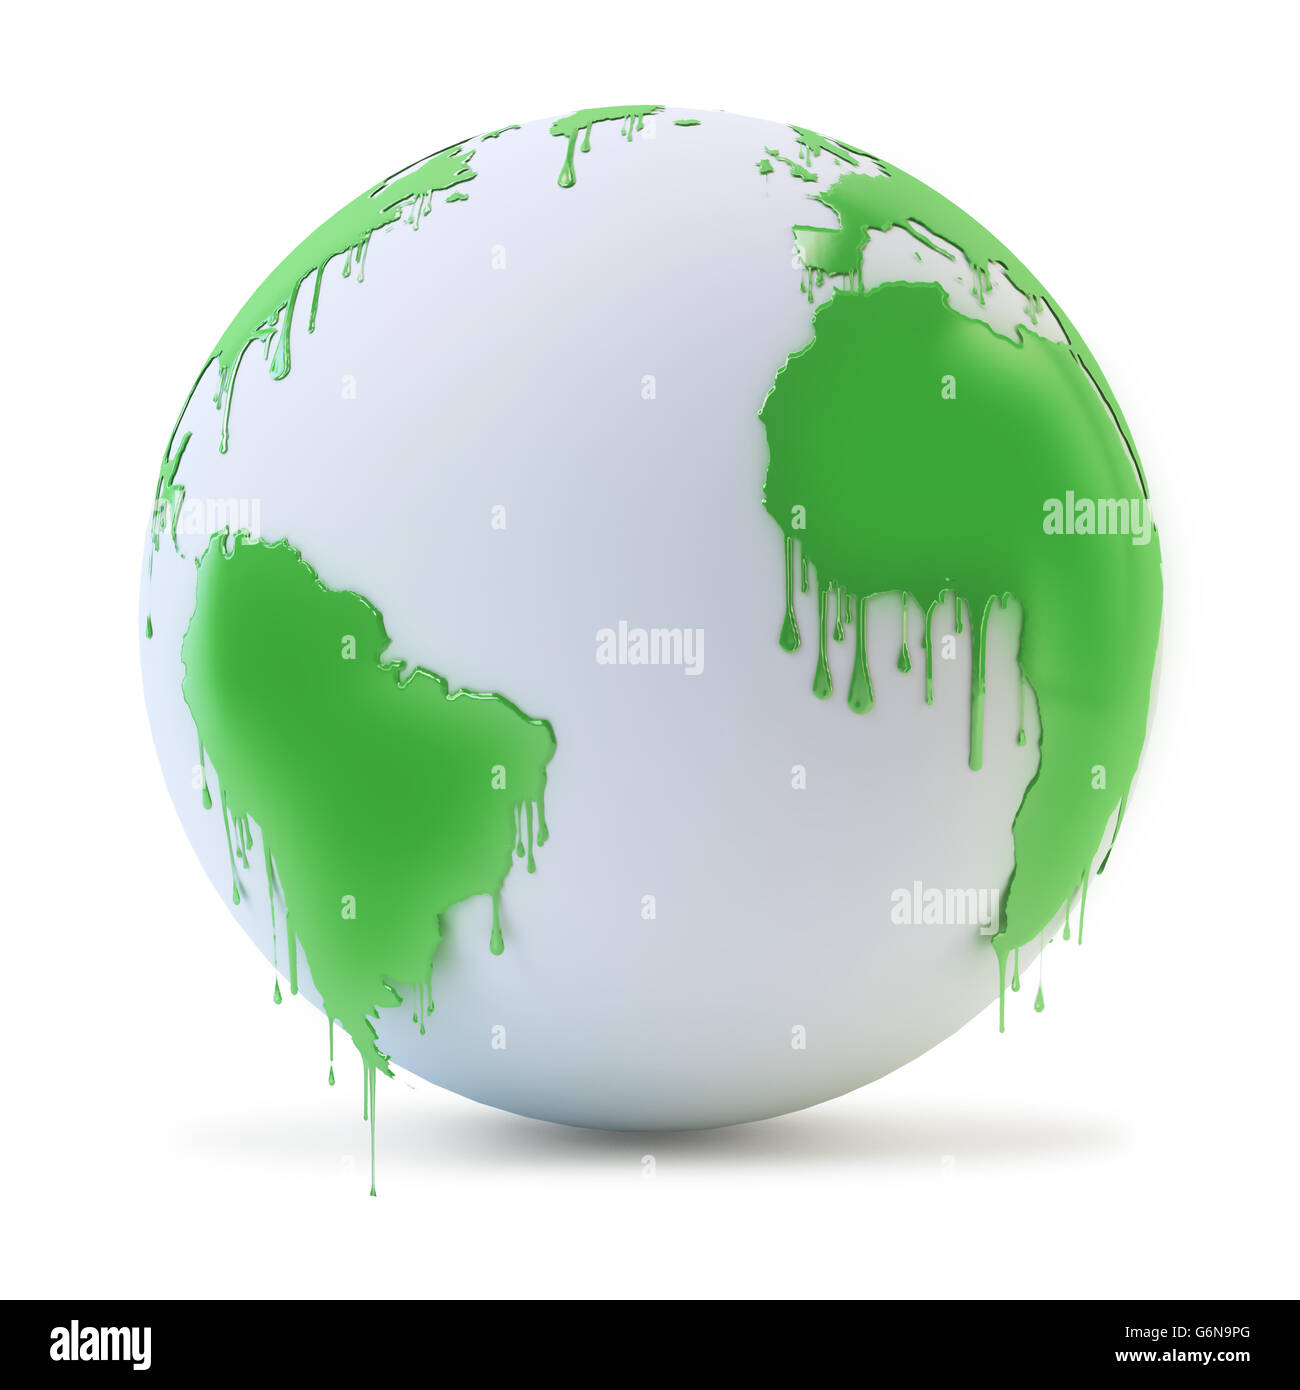 Wet paint dripping from a globe - environmental protection concept 3D illustration - Stock Image